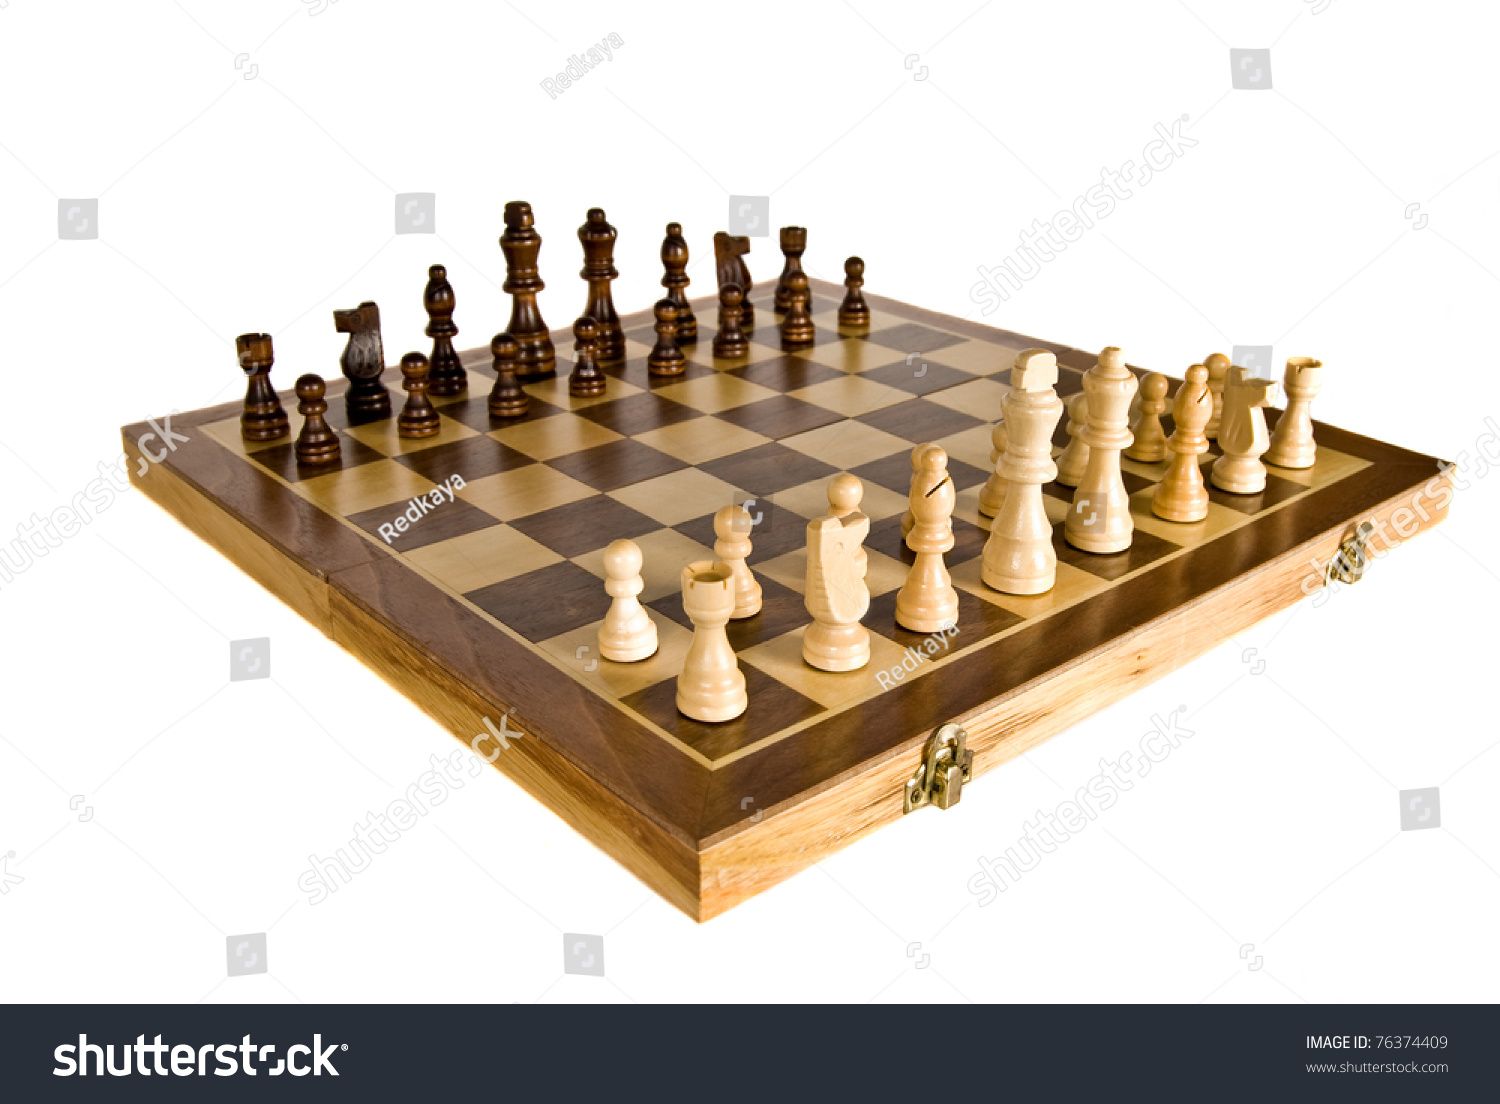 Chess game stock photo 76374409 shutterstock Where can i buy a chess game